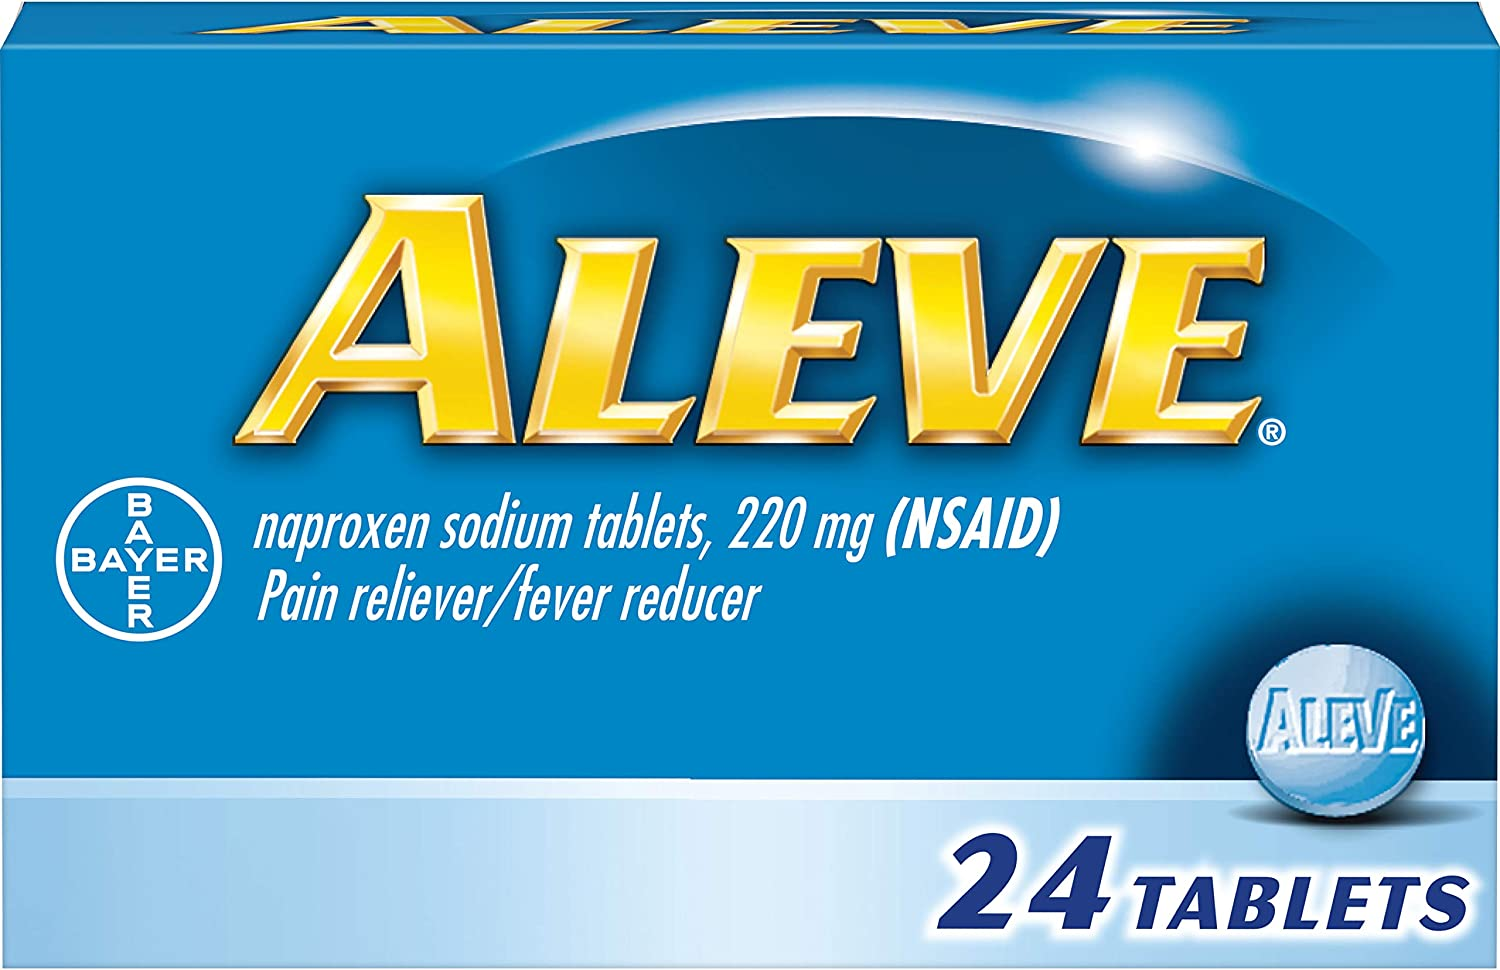 Aleve Tablets with Naproxen Sodium, 220mg (NSAID) Pain Reliever/Fever Reducer, 24 Count: Health & Personal Care